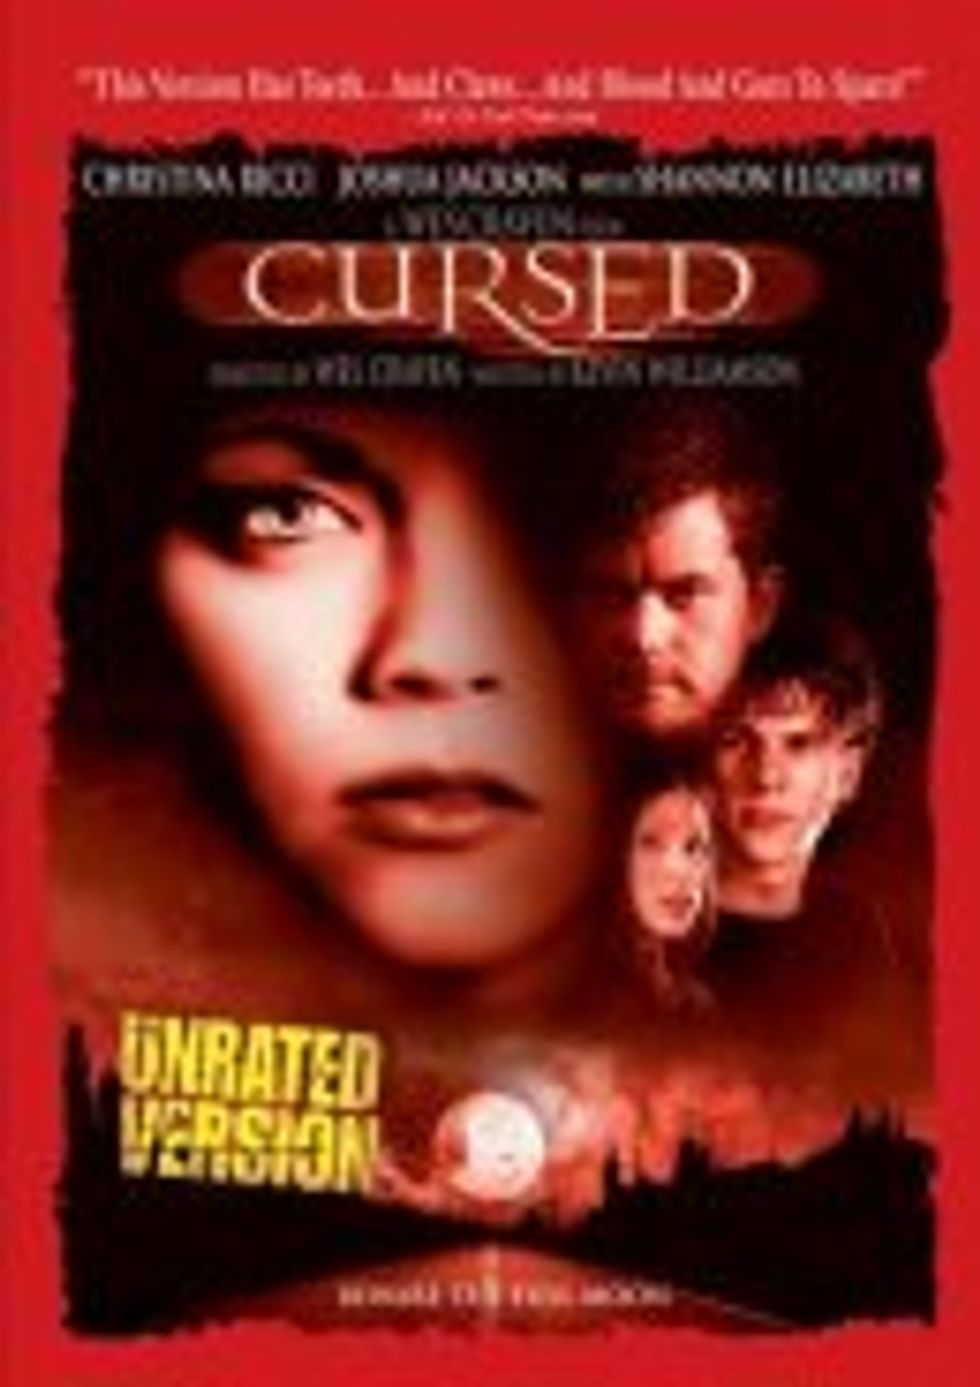 Cursed: Unrated Version (2004)